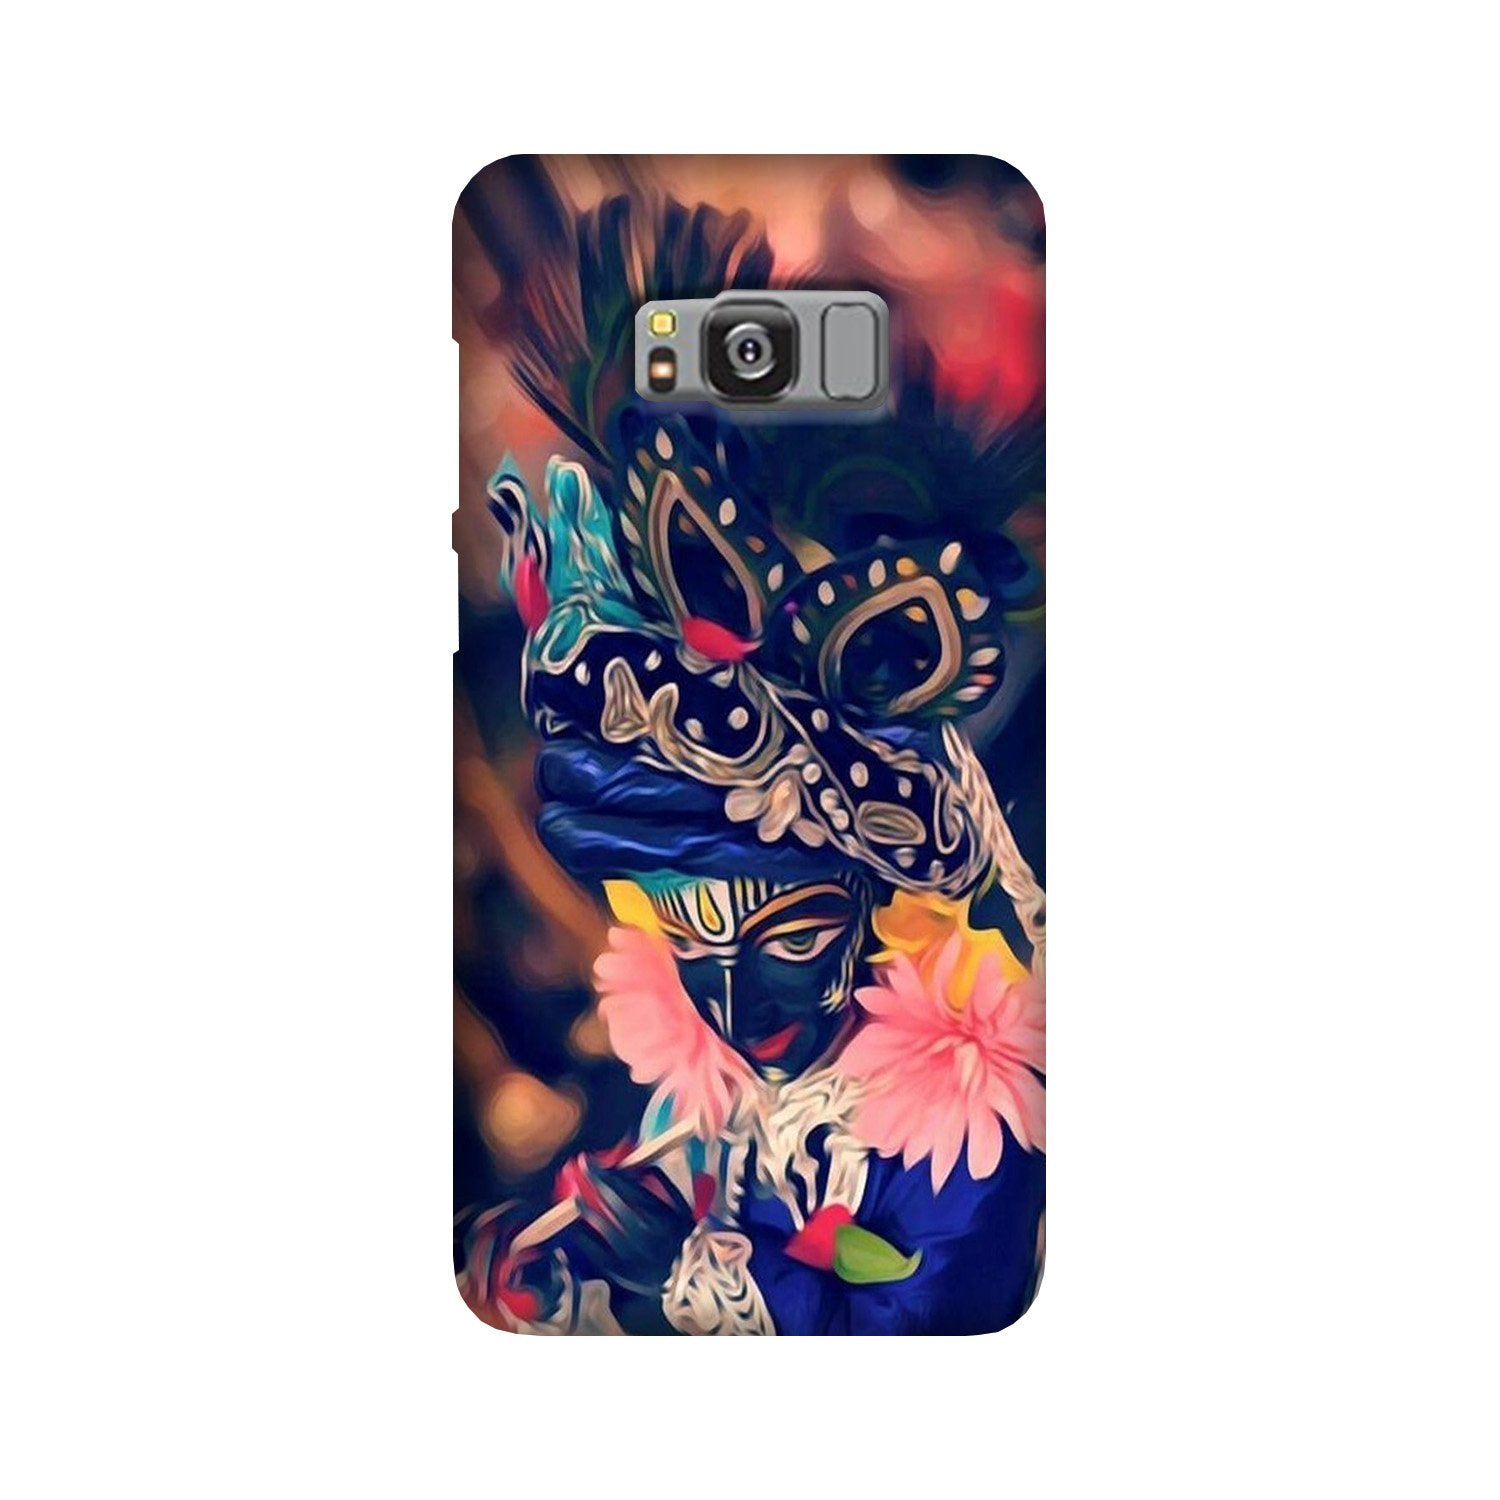 Lord Krishna Case for Galaxy S8 Plus